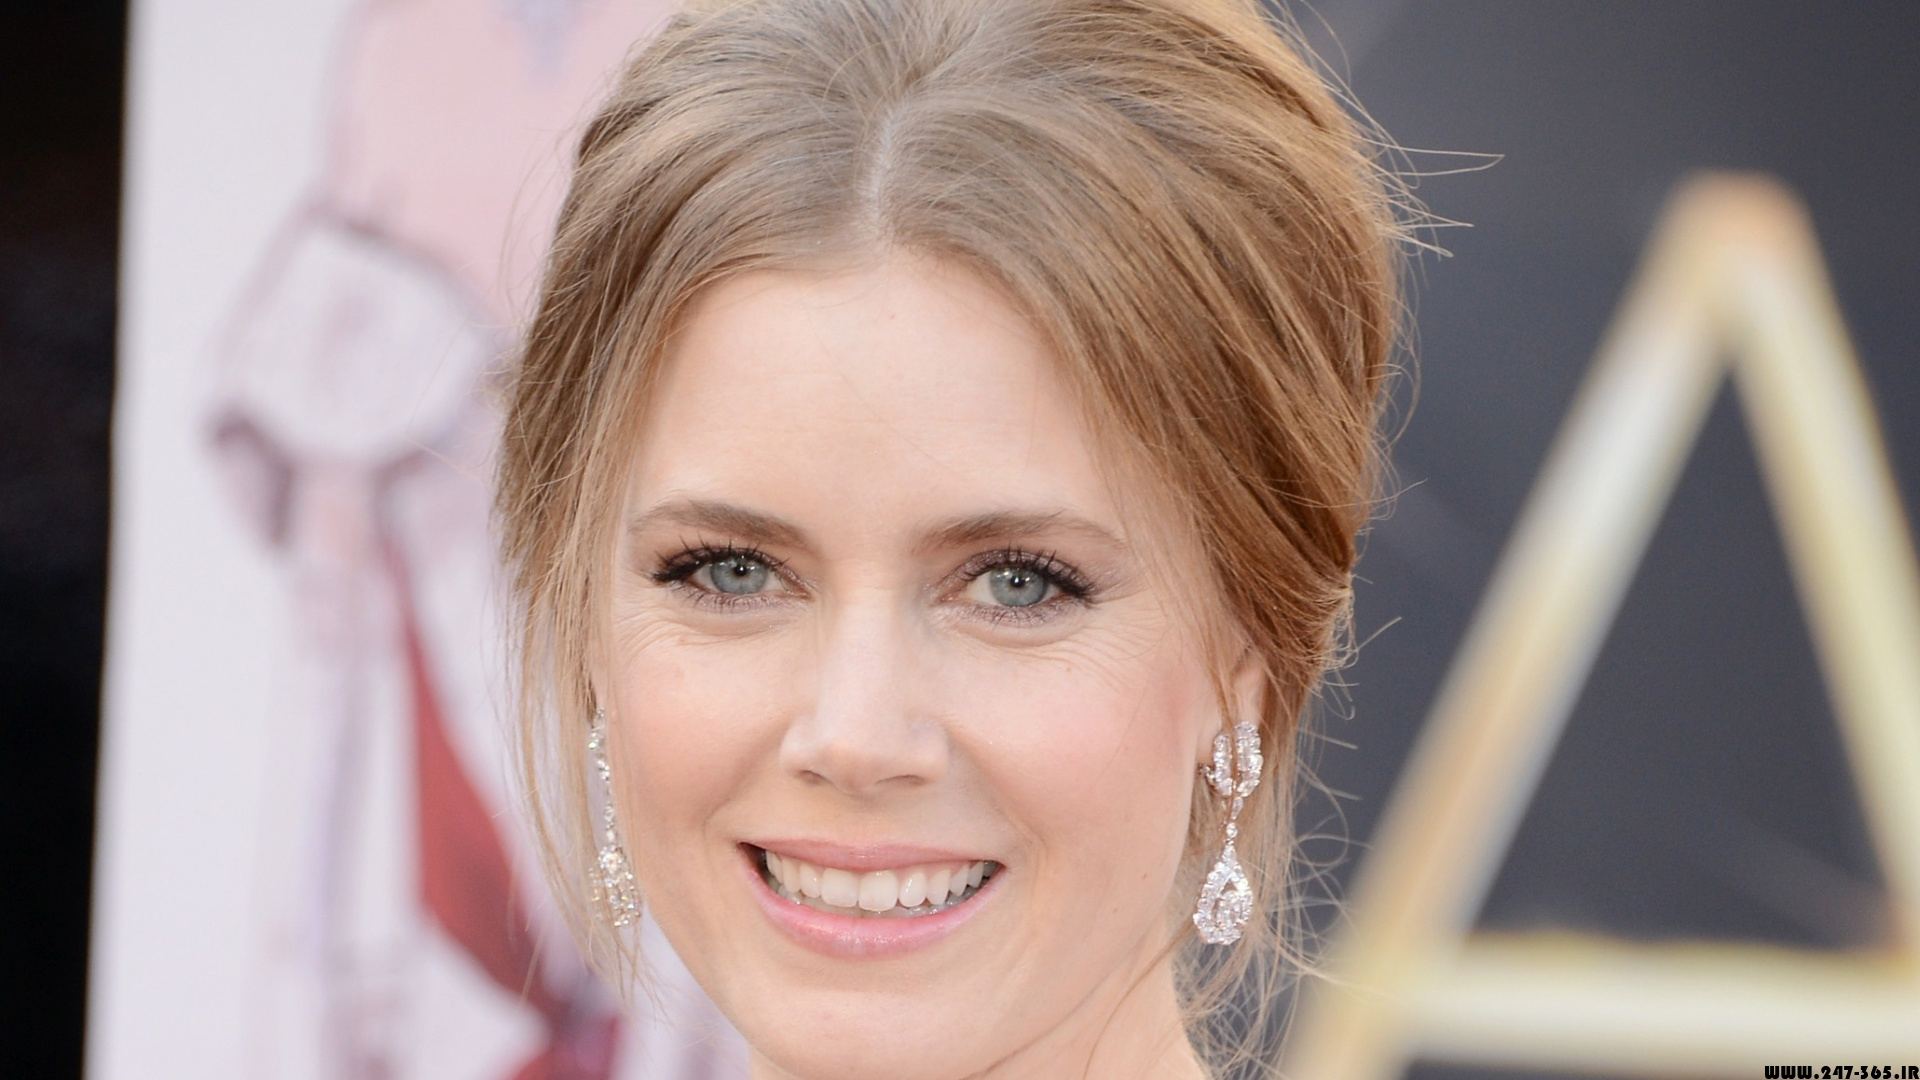 http://dl.247-365.ir/pic/celebrity/amy_adams_4/Amy_Adams_4_01.jpg